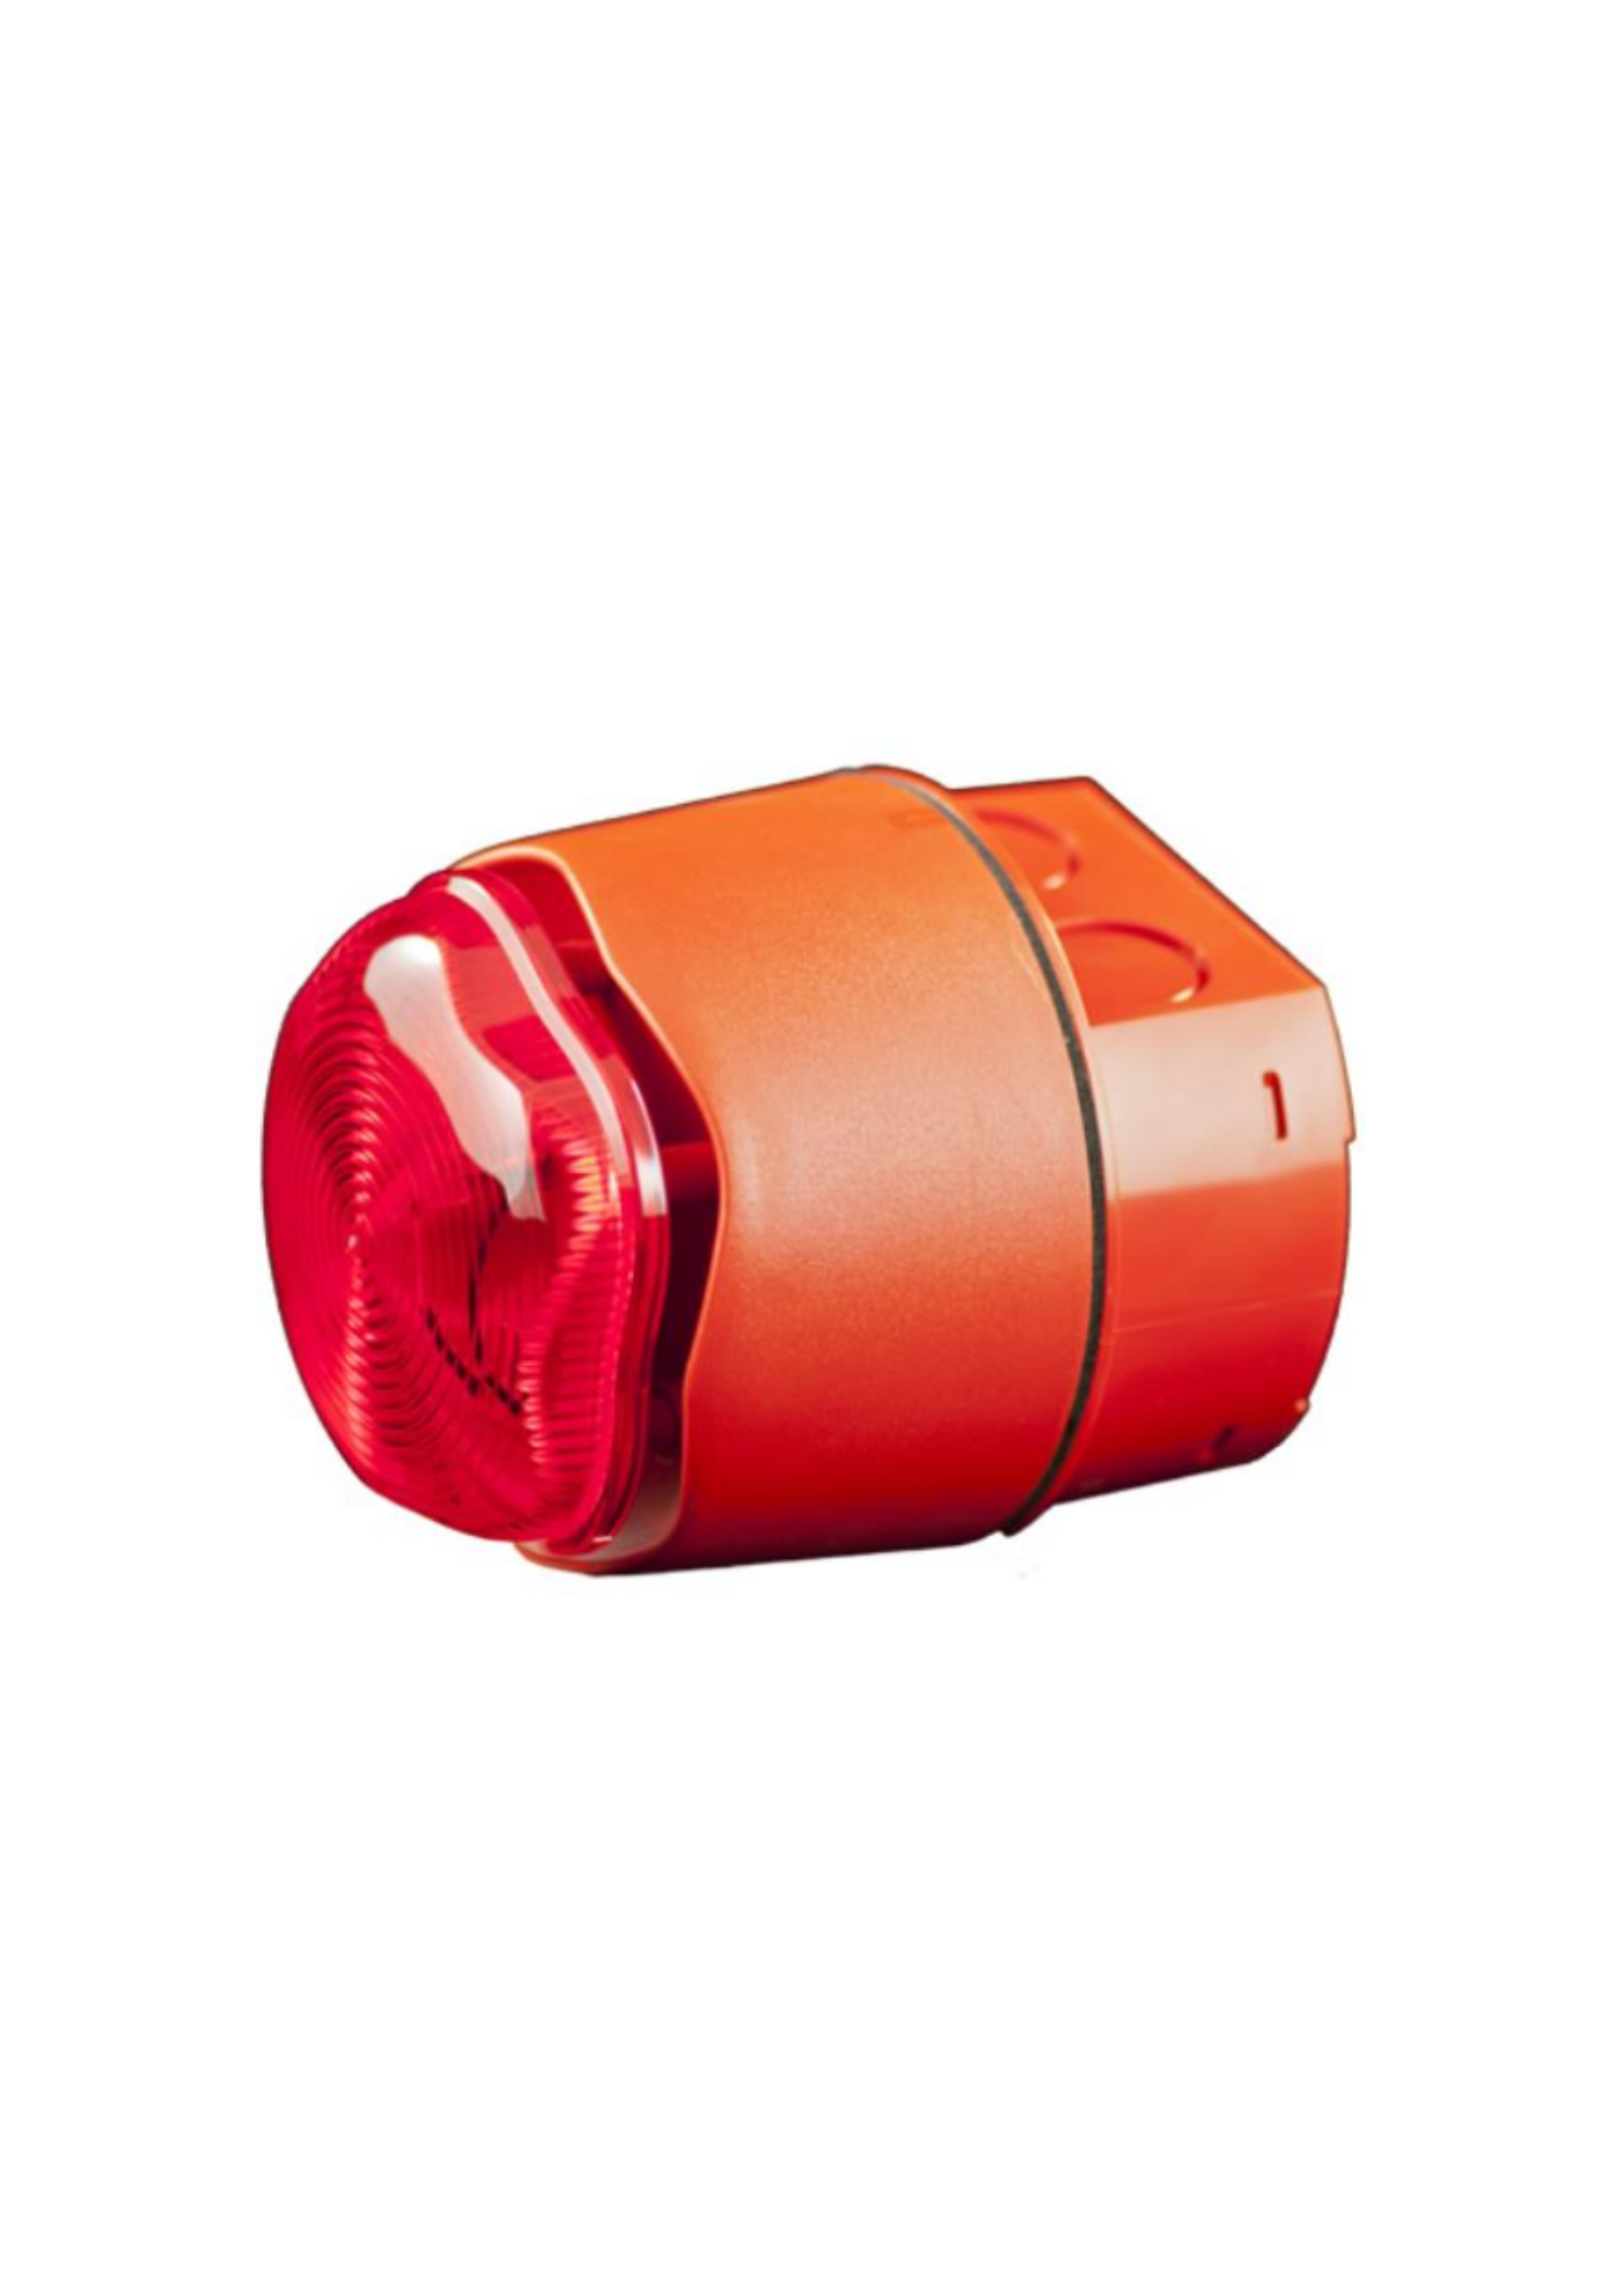 Conventional Weatherproof Wall Sounder-Beacon. 126...